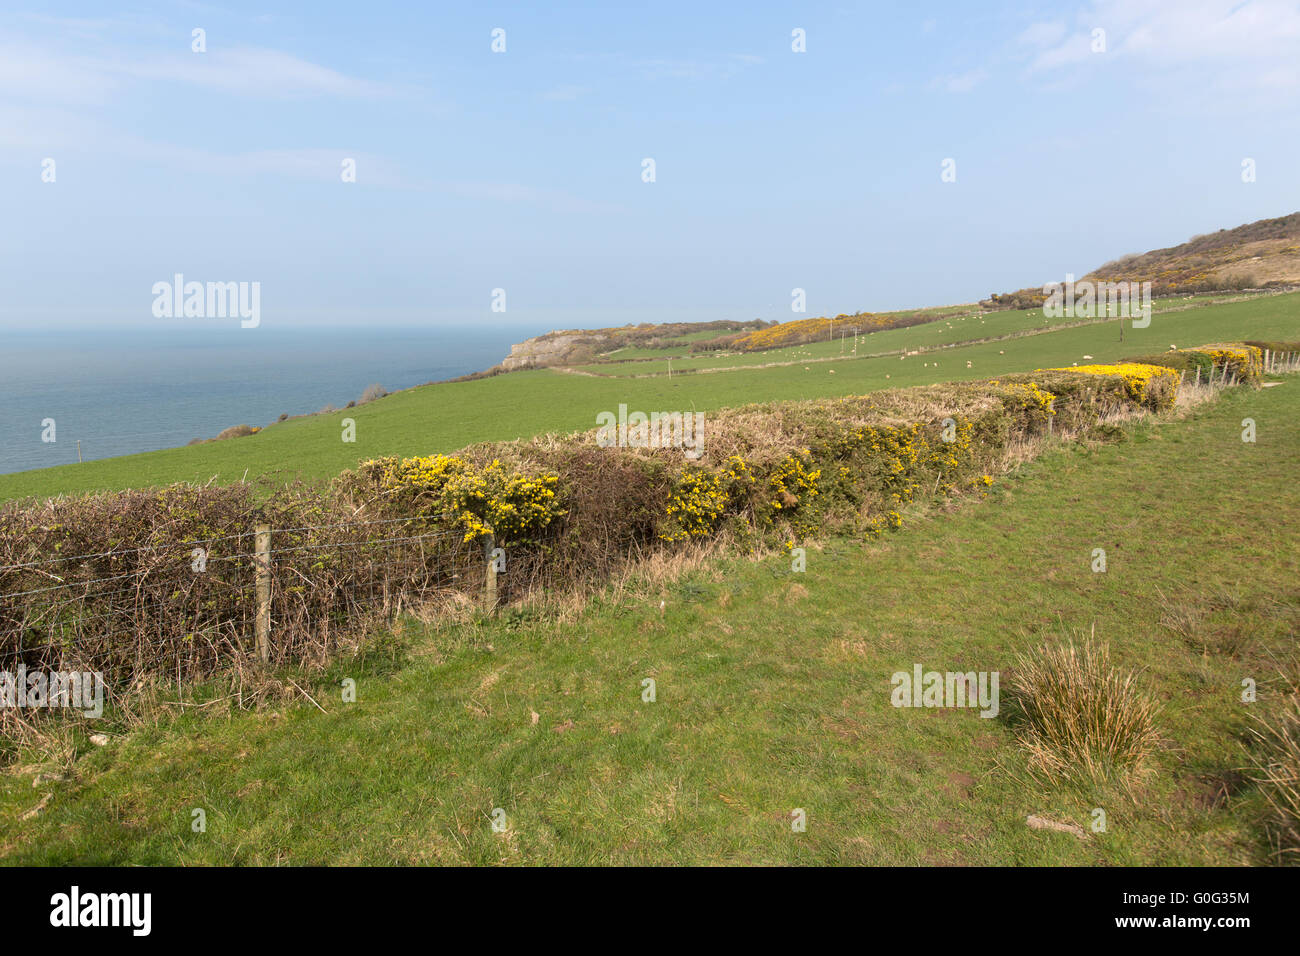 Picturesque spring view of the coastal headland at Red Wharf Bay, near the village of Mariandyrys. Stock Photo